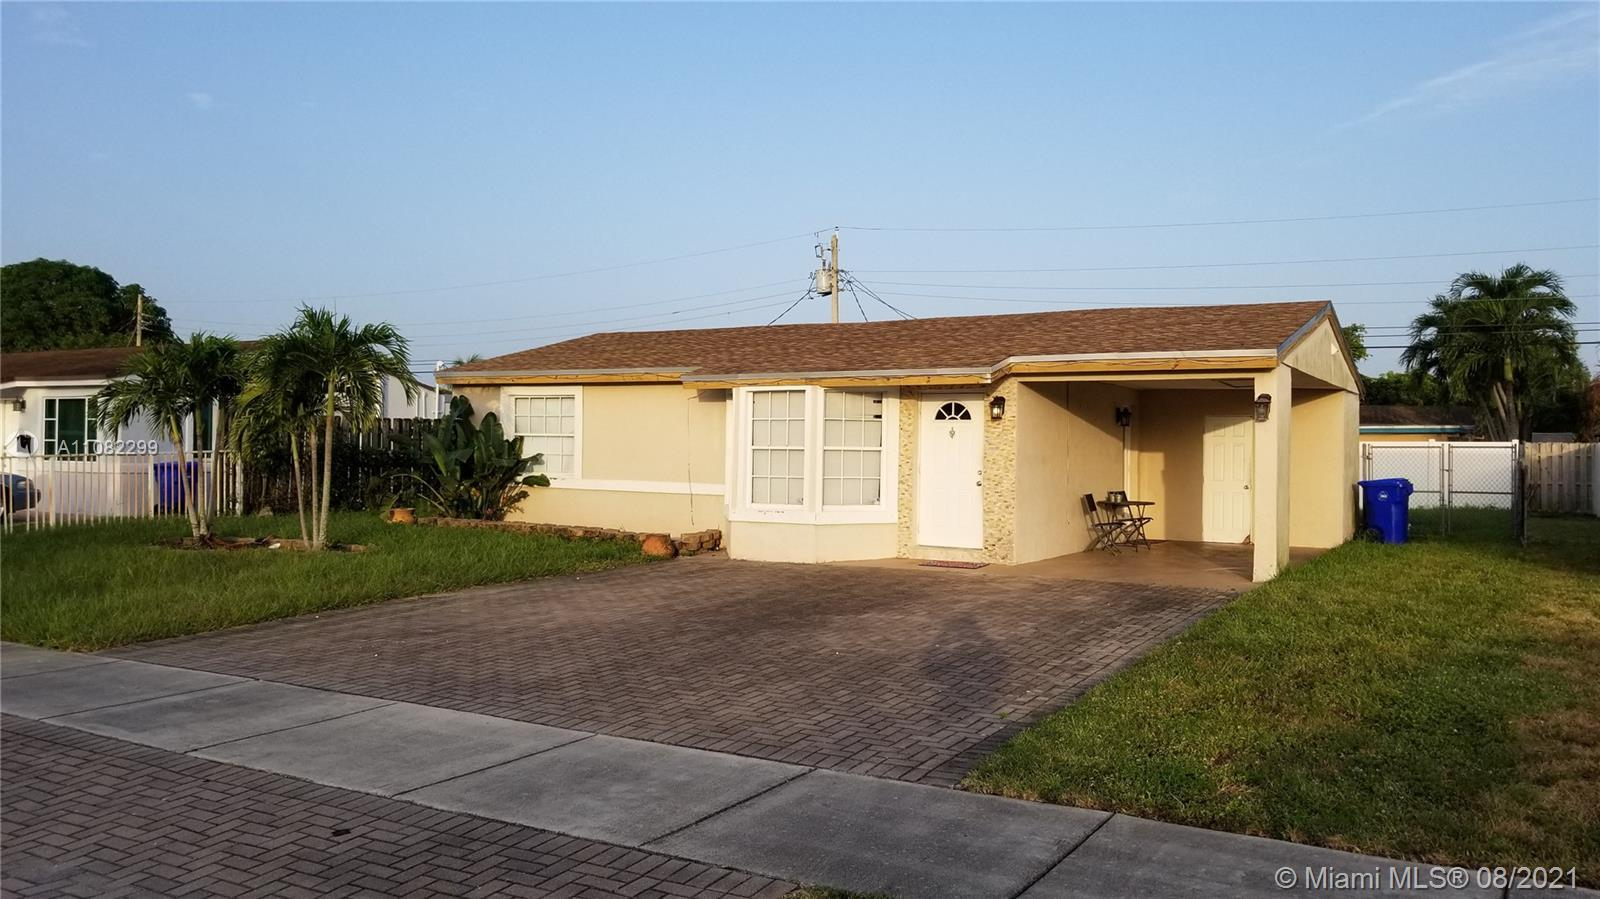 FIRST TIME HOMEBUYERS, investors HURRY! Perfect home for a family or to rent it out., UPDATED floors